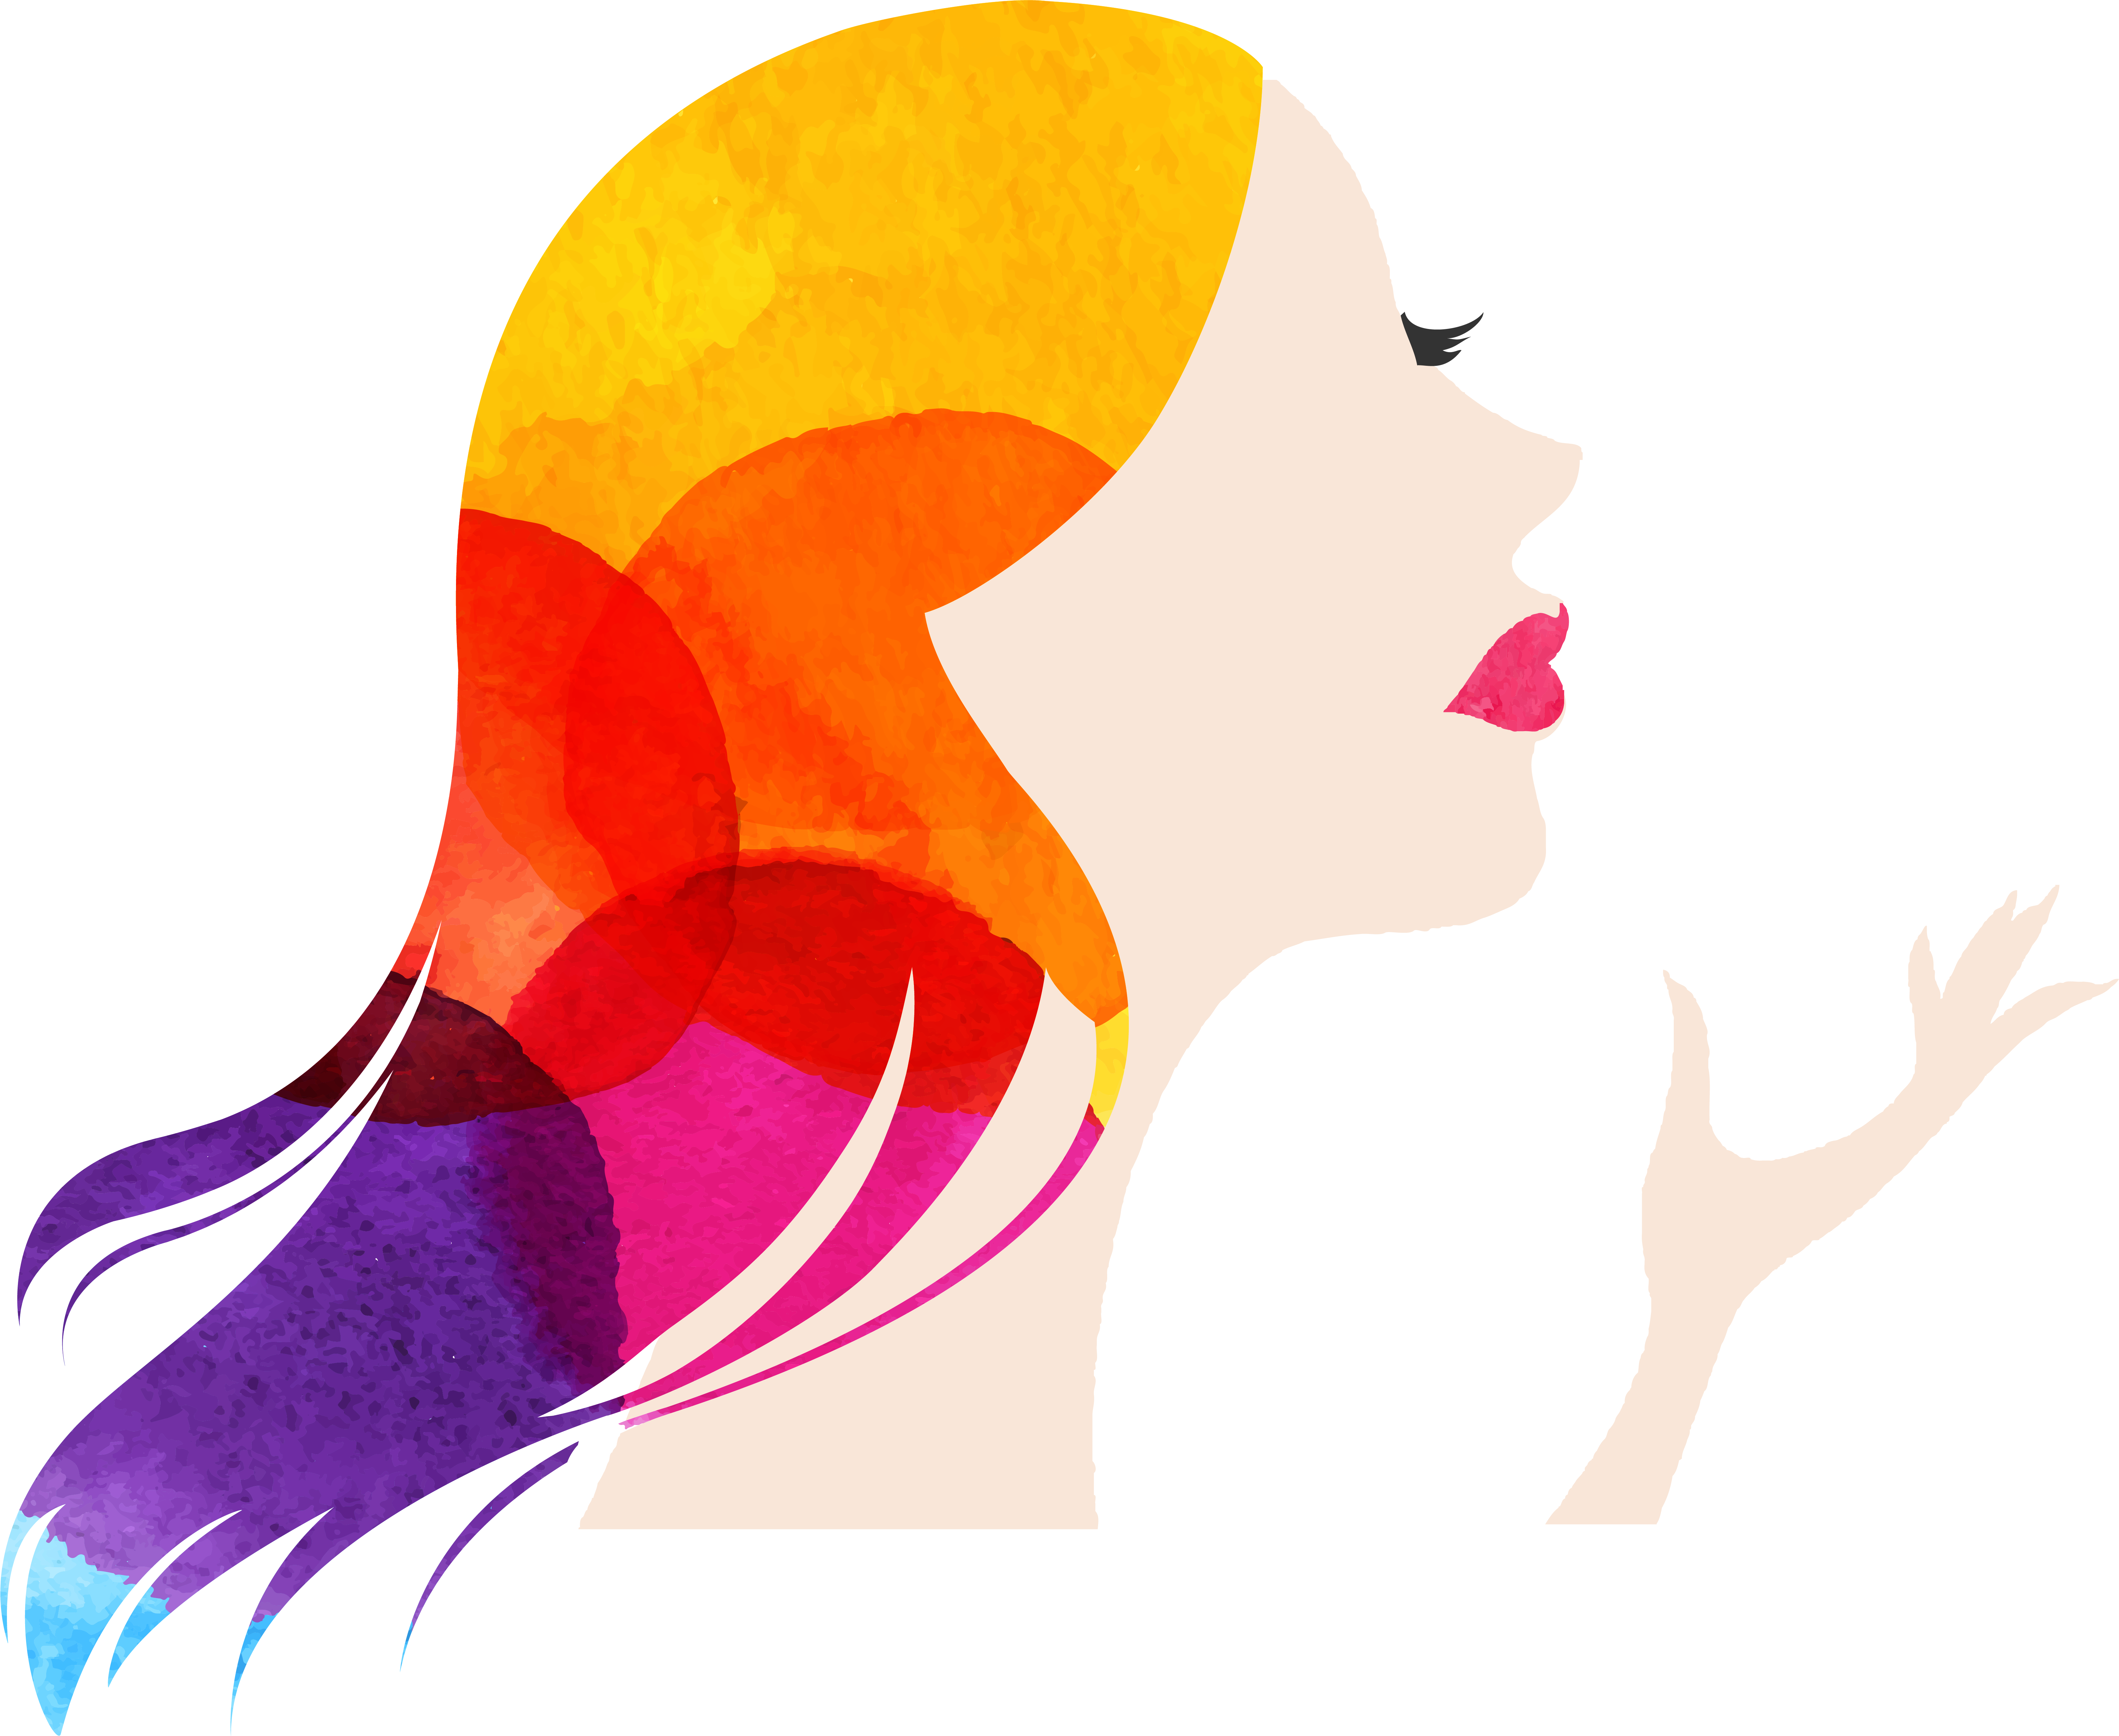 Women makeup shutterstock png. Woman silhouette painting at